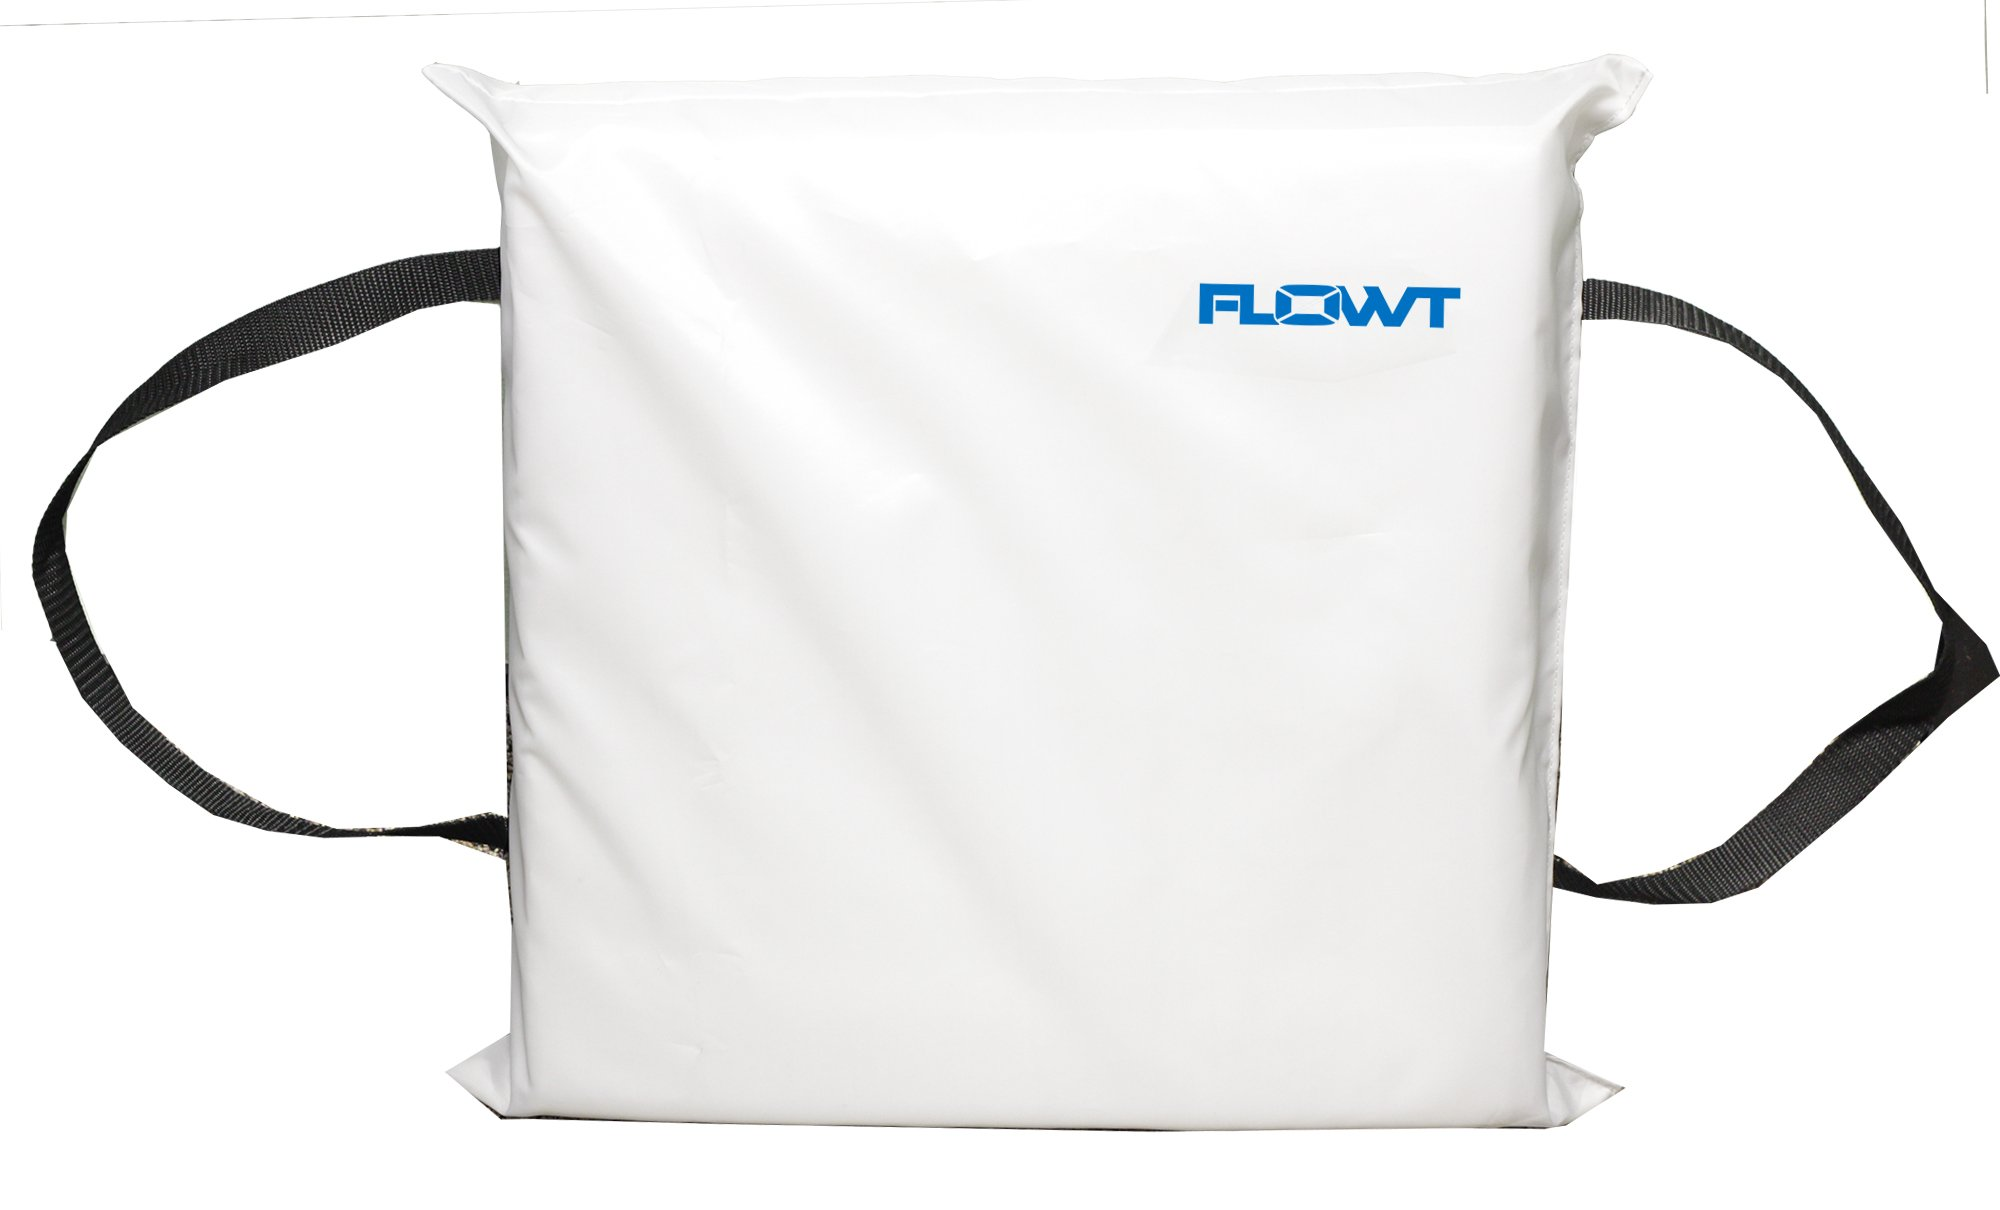 Flowt 40104 Type IV Throwable Floatation Foam Cushion, USCG Approved, White by Flowt